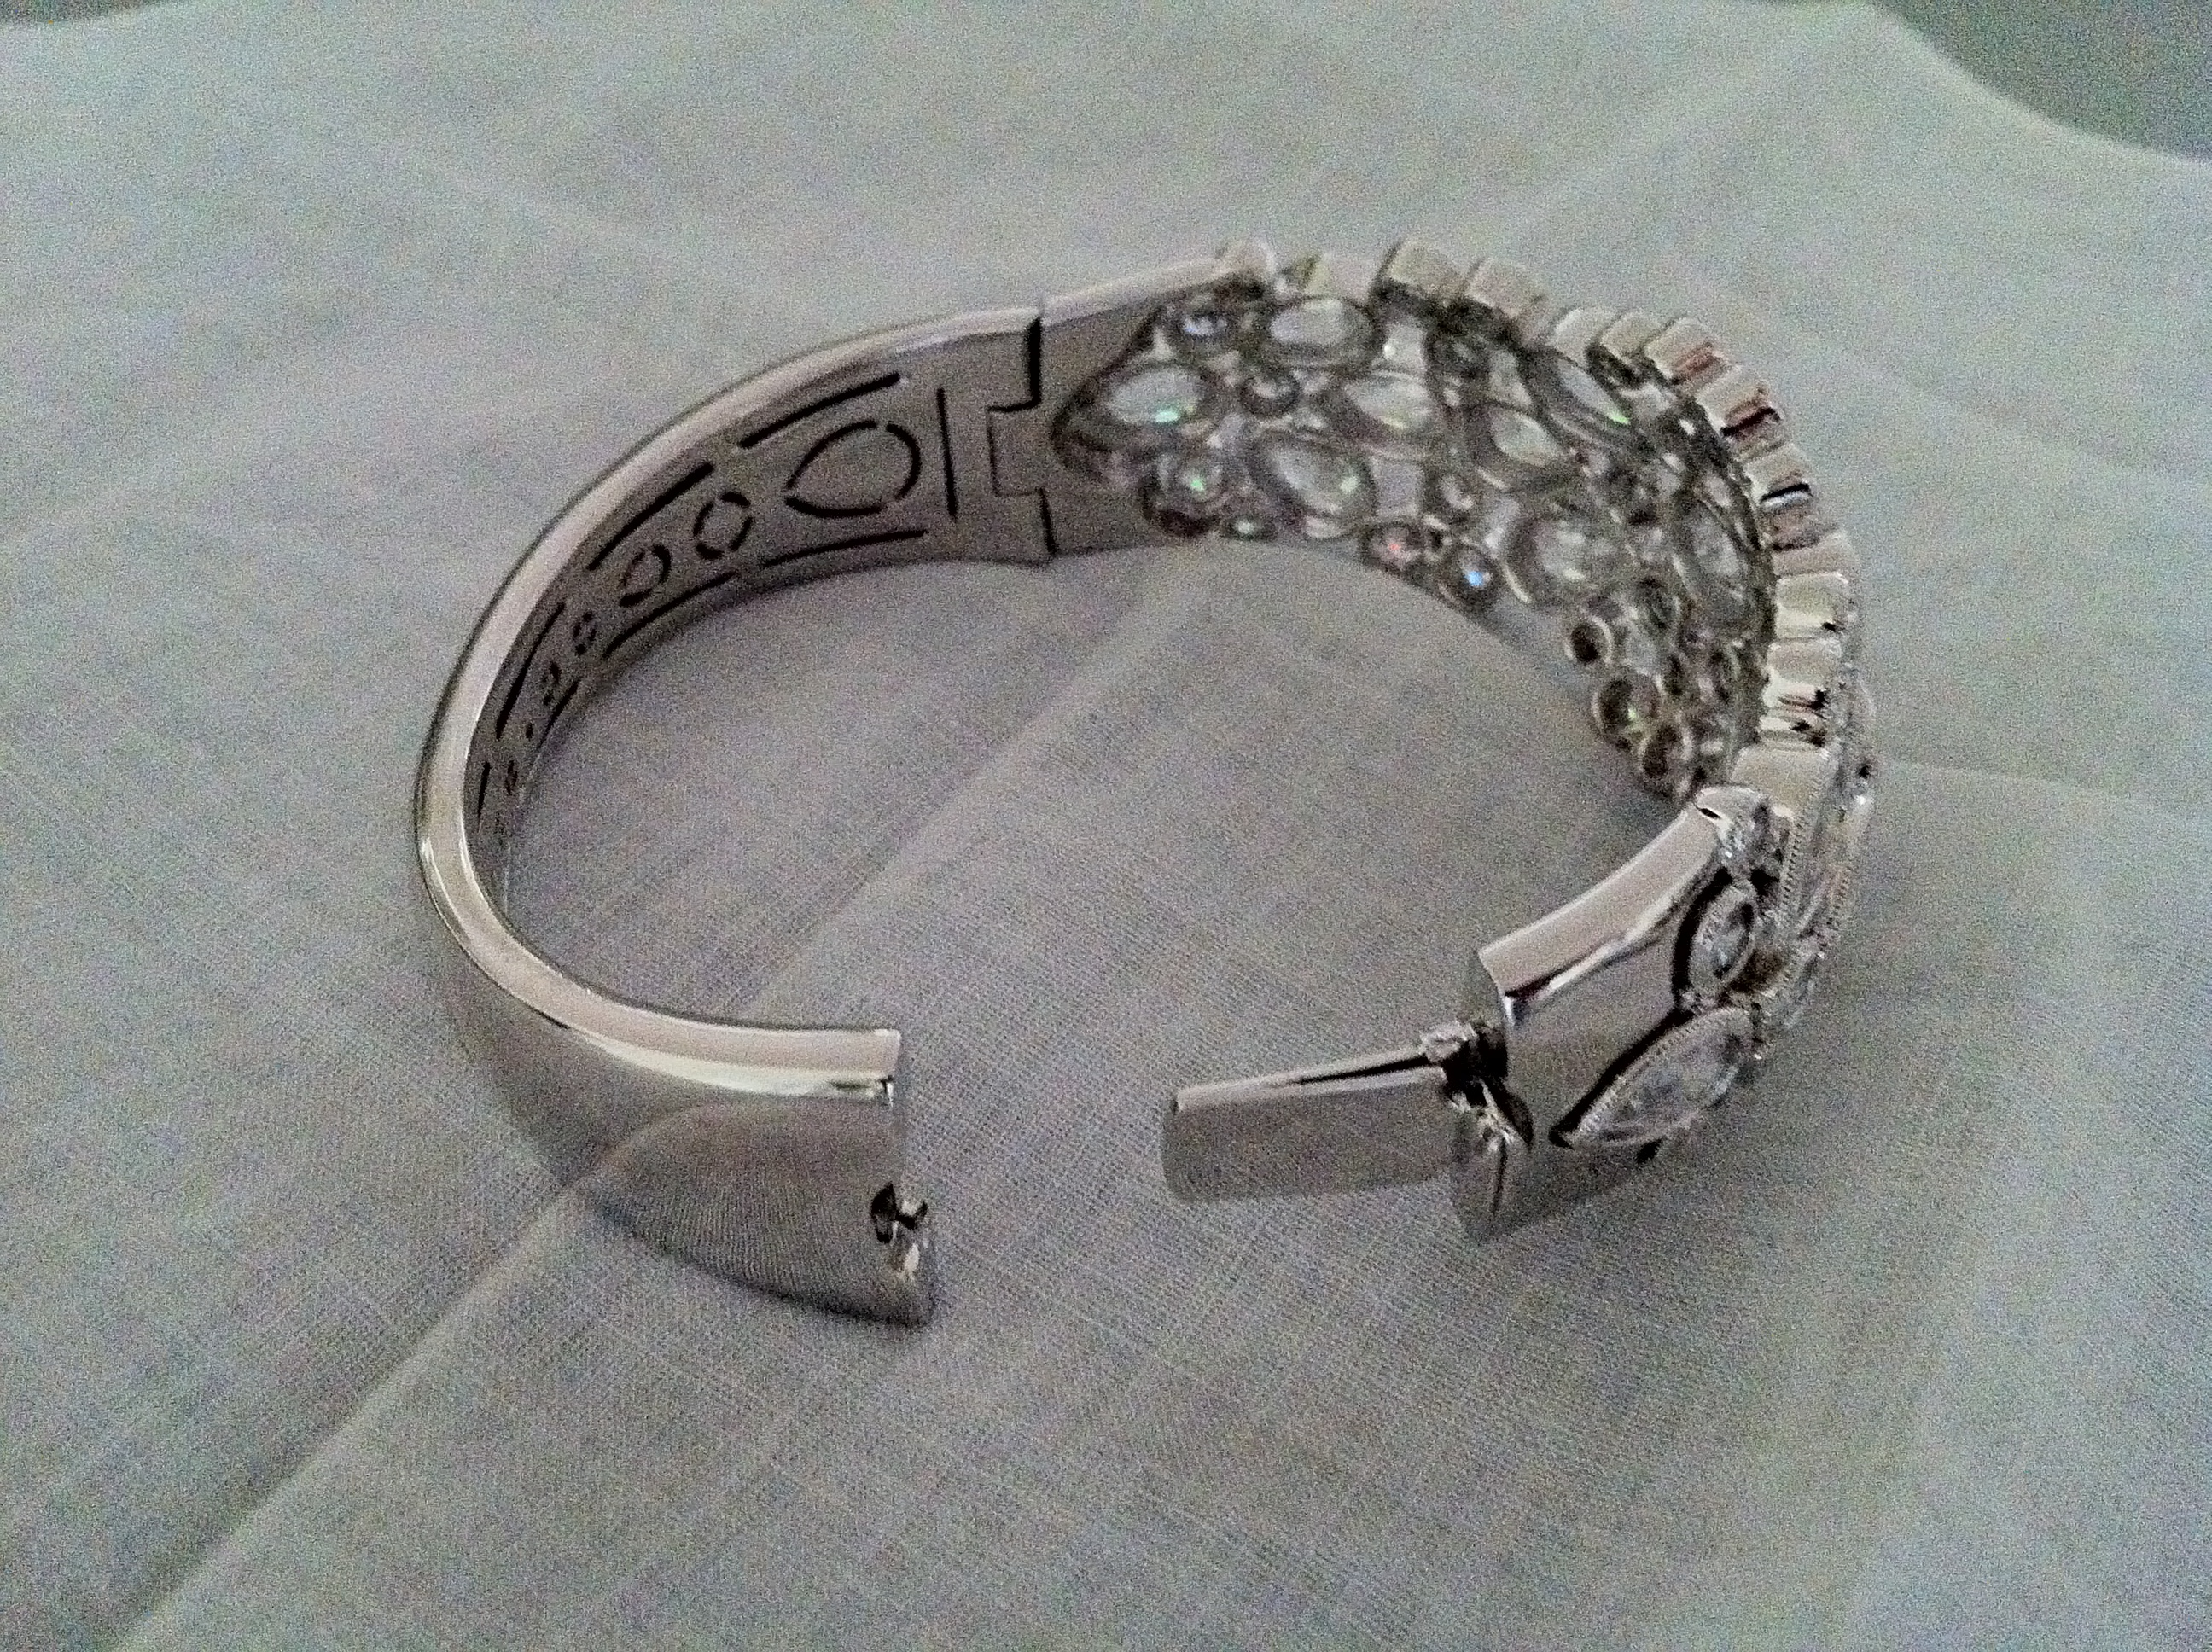 Jewelry, silver, Bracelets, Glam, Wedding, Crystal, Bracelet, Cuff, Bangle, Orsini, Adriana